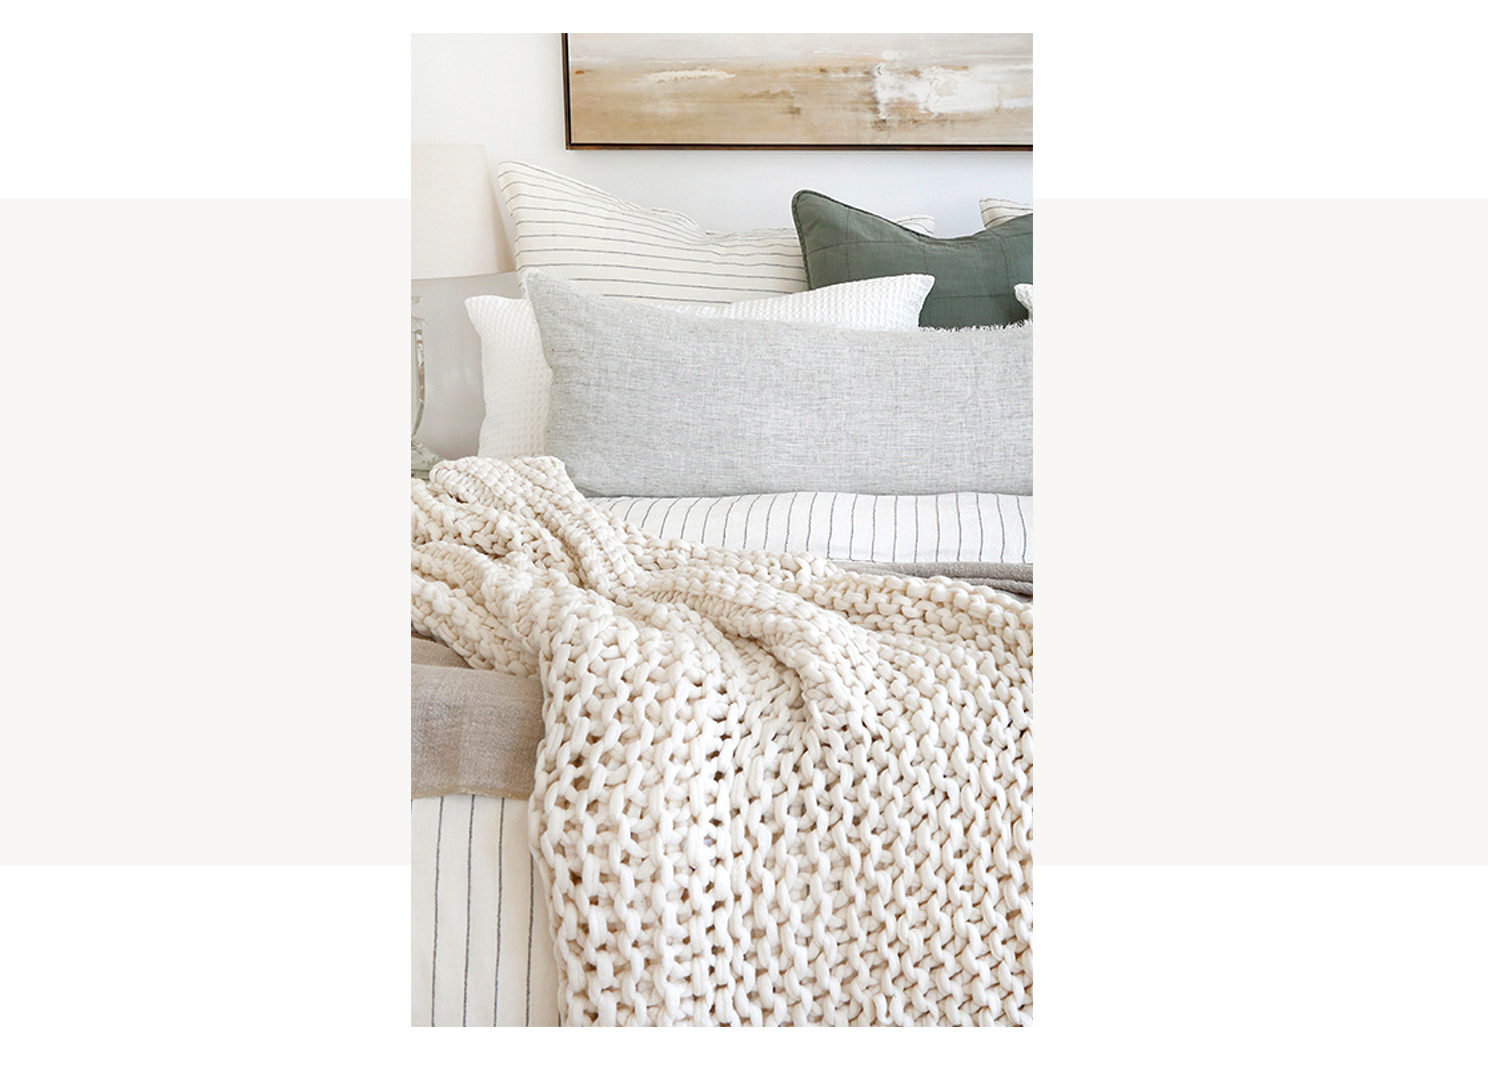 Chunky knit throw blanket on cream striped bed with green pillows